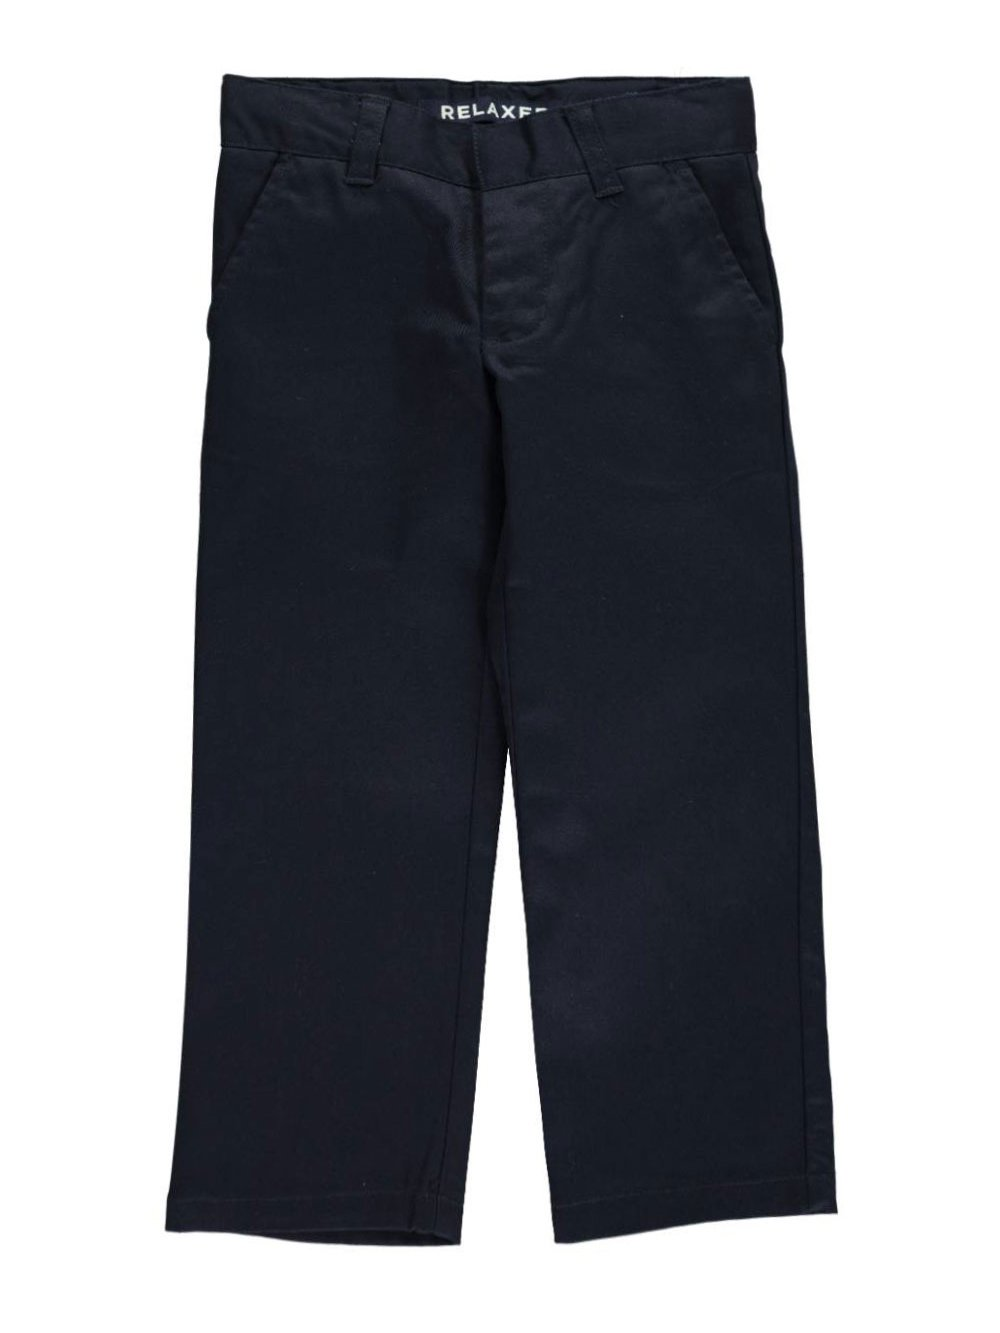 French Toast Little Boys' Wrinkle No More Relaxed Fit Pants - Navy, 6 Slim